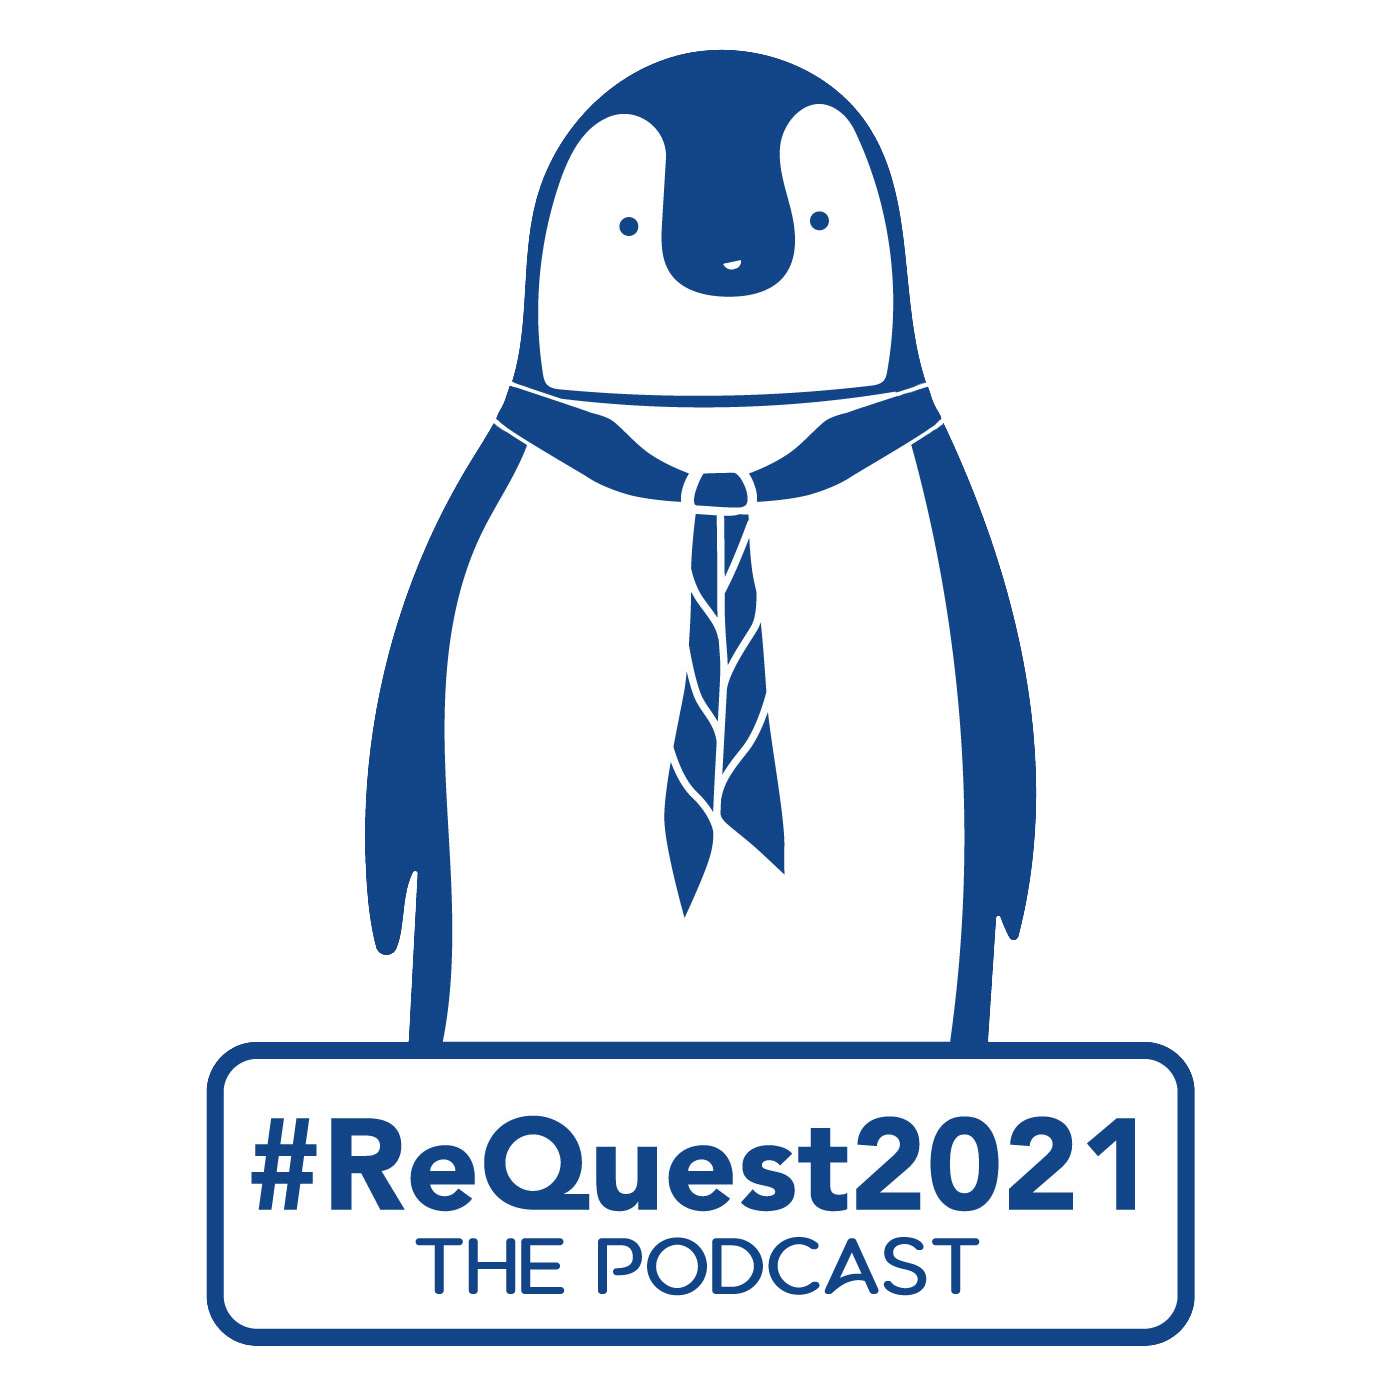 ReQuest2021 Podcast